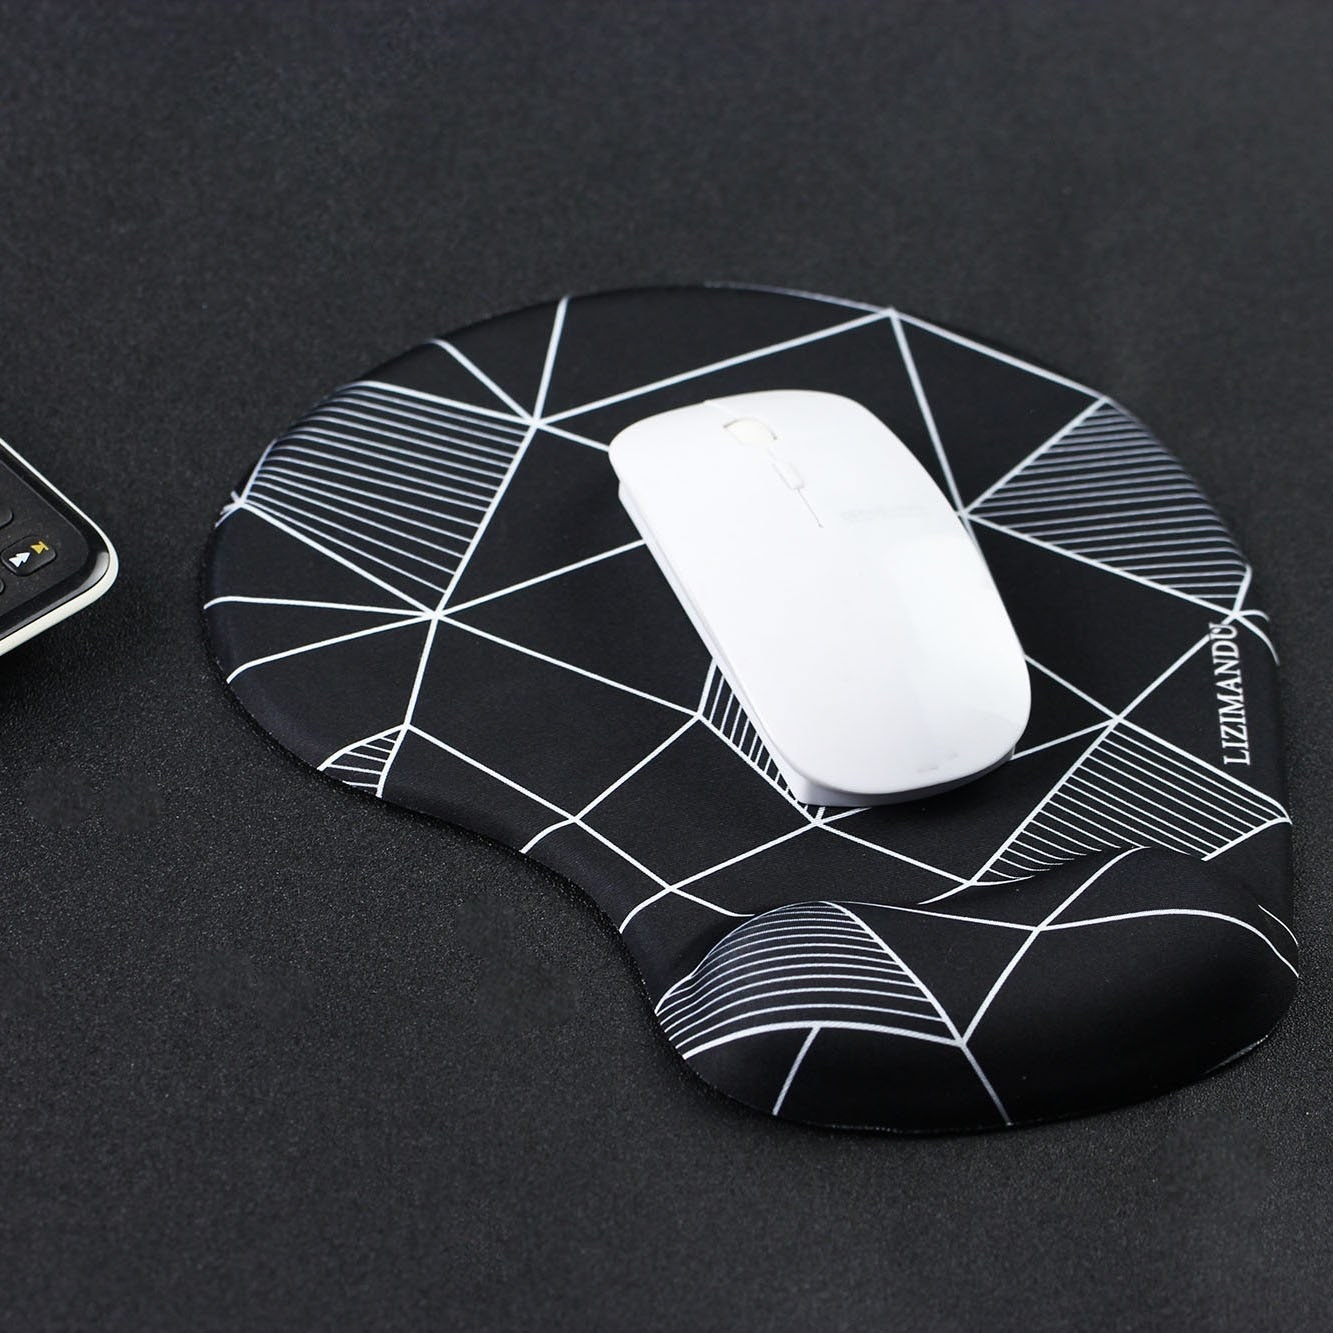 Wireless mouse placed on mousepad with gel support